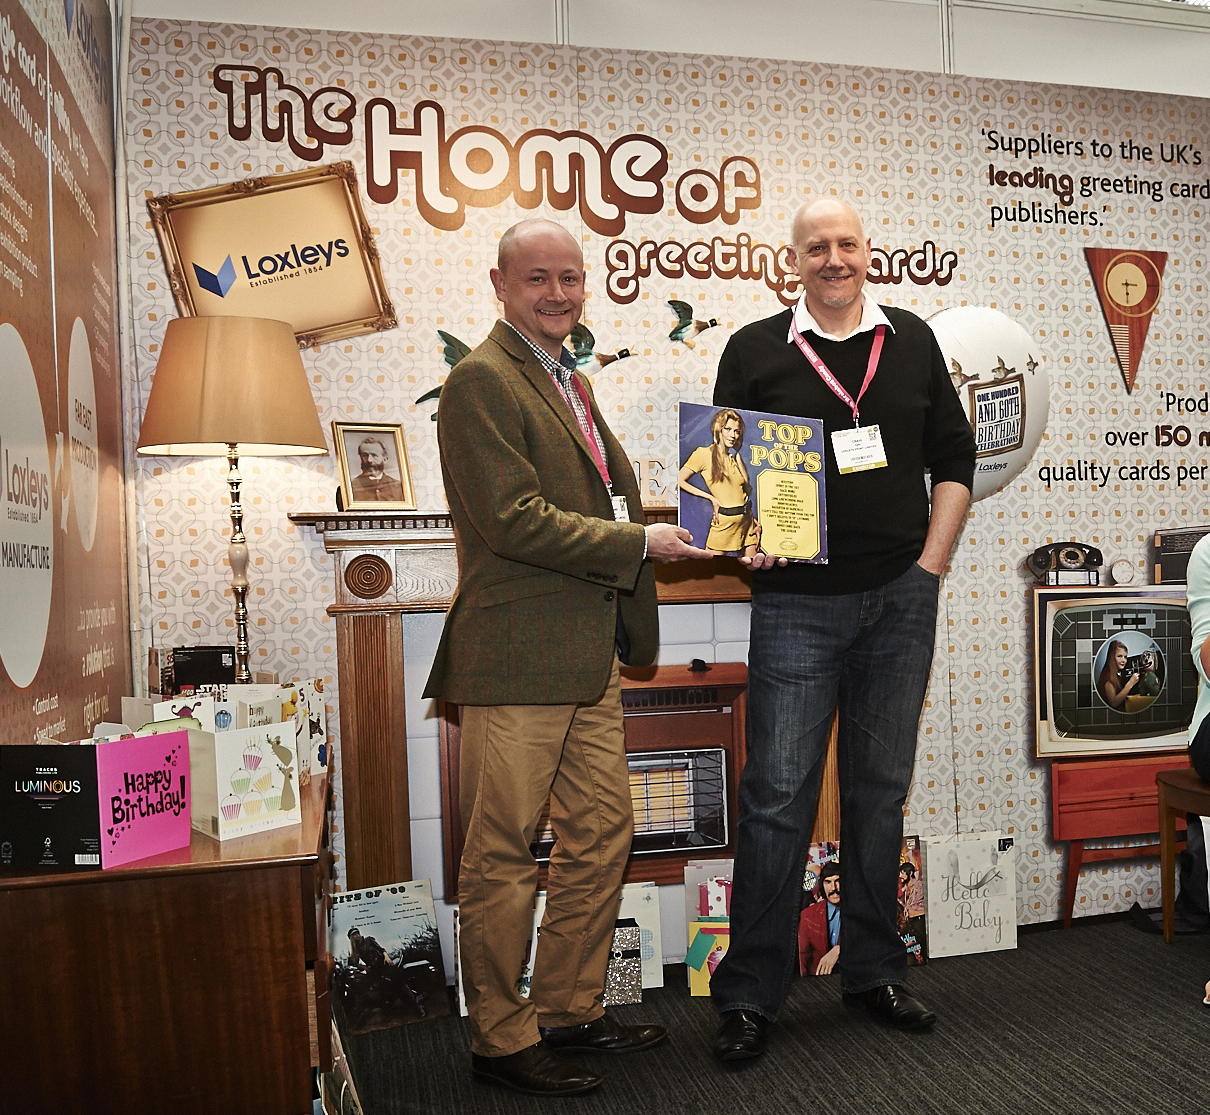 Above: Craig Zelly (right) with Loxleys' ceo Richard Bacon.